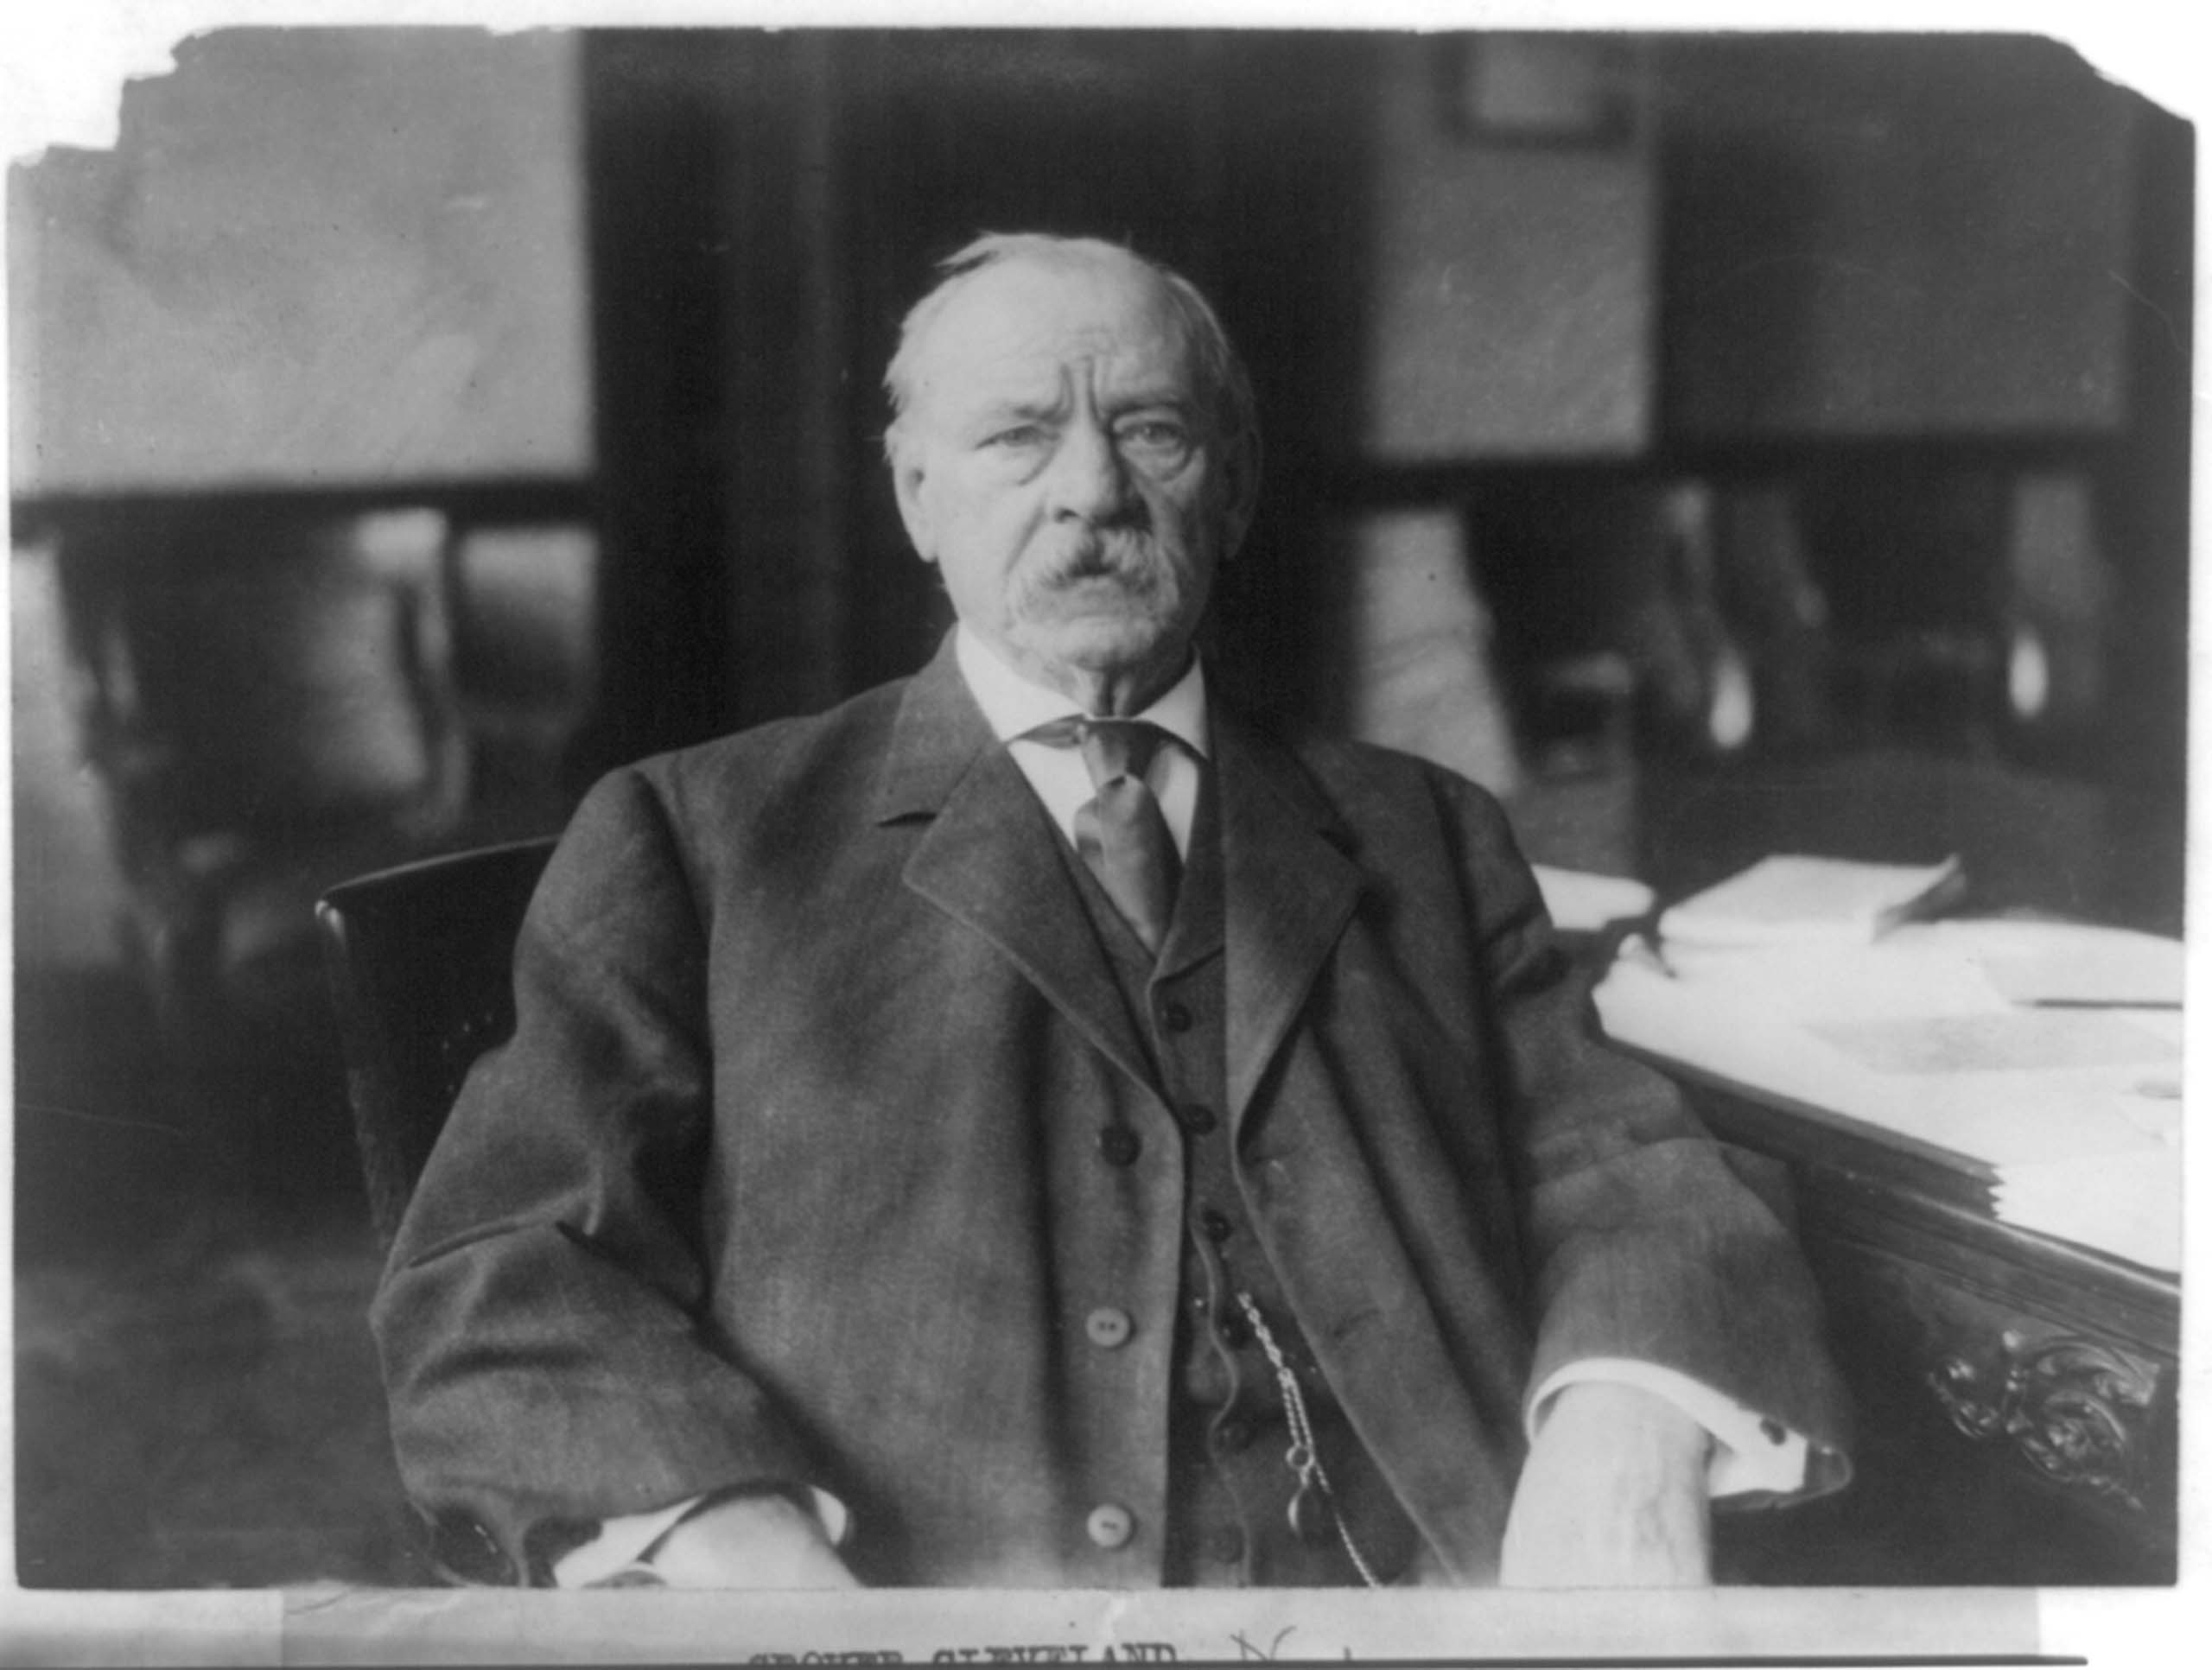 c. 1908. Grover Cleveland, half-length portrait, seated at desk.